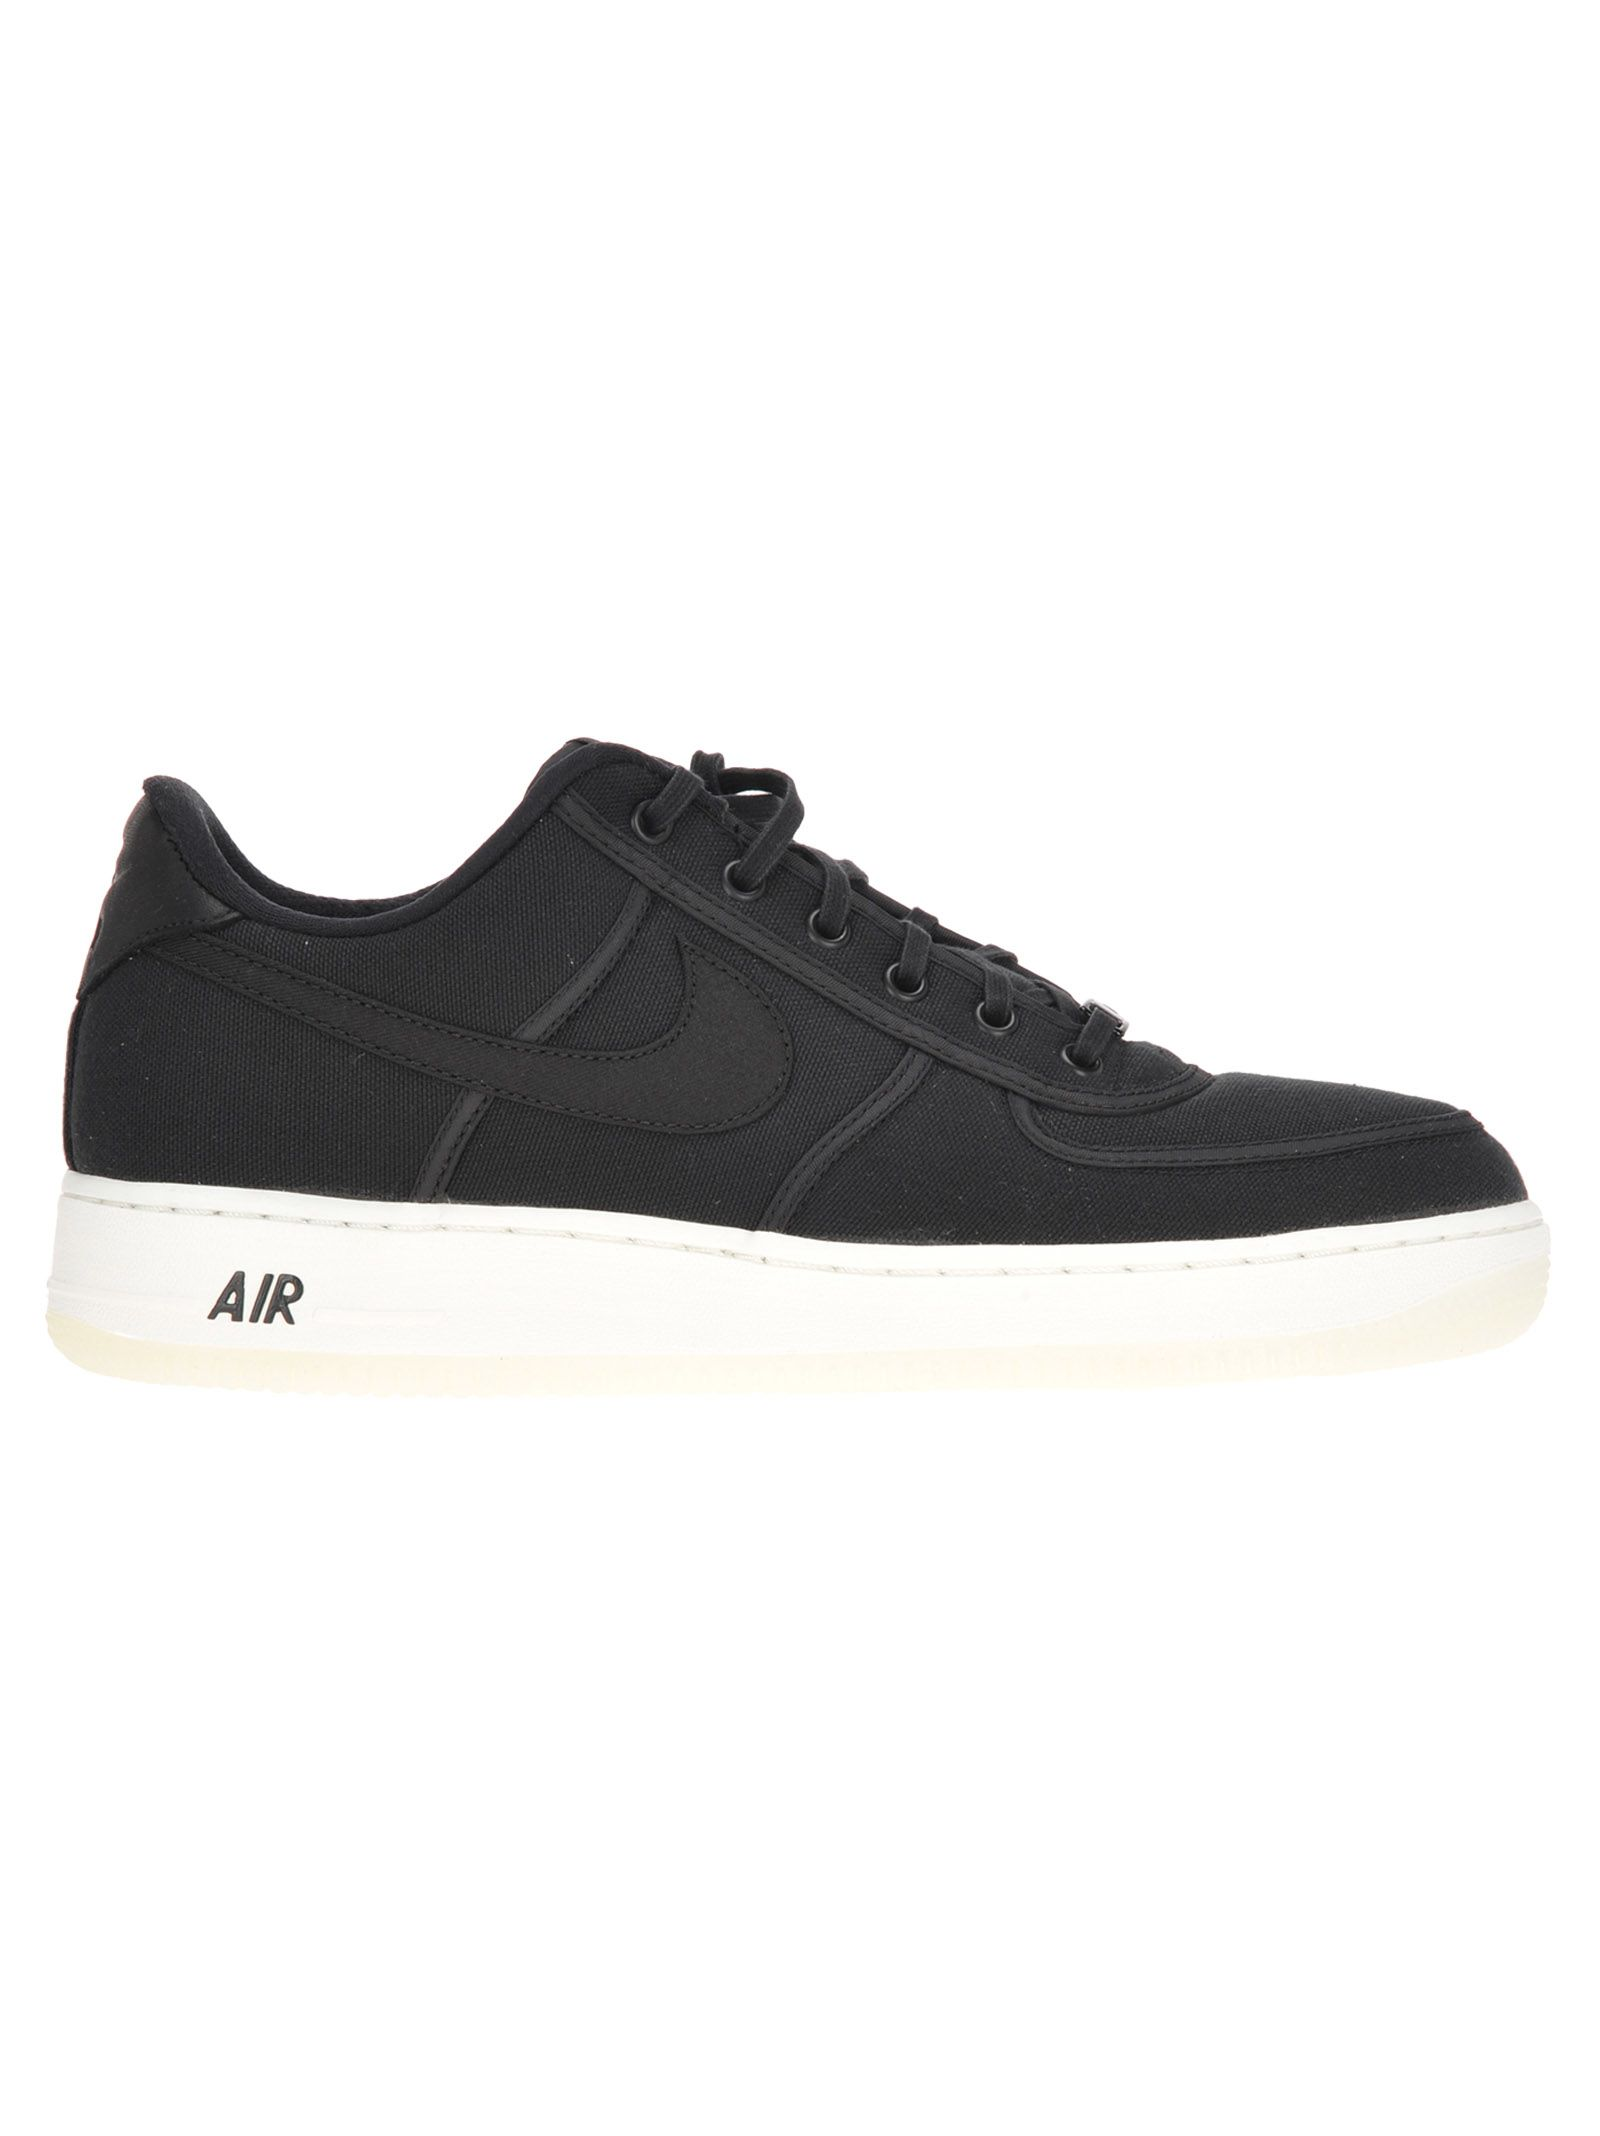 nike nike ltd nike air force 1 low retro qs cnvs sneakers. Black Bedroom Furniture Sets. Home Design Ideas